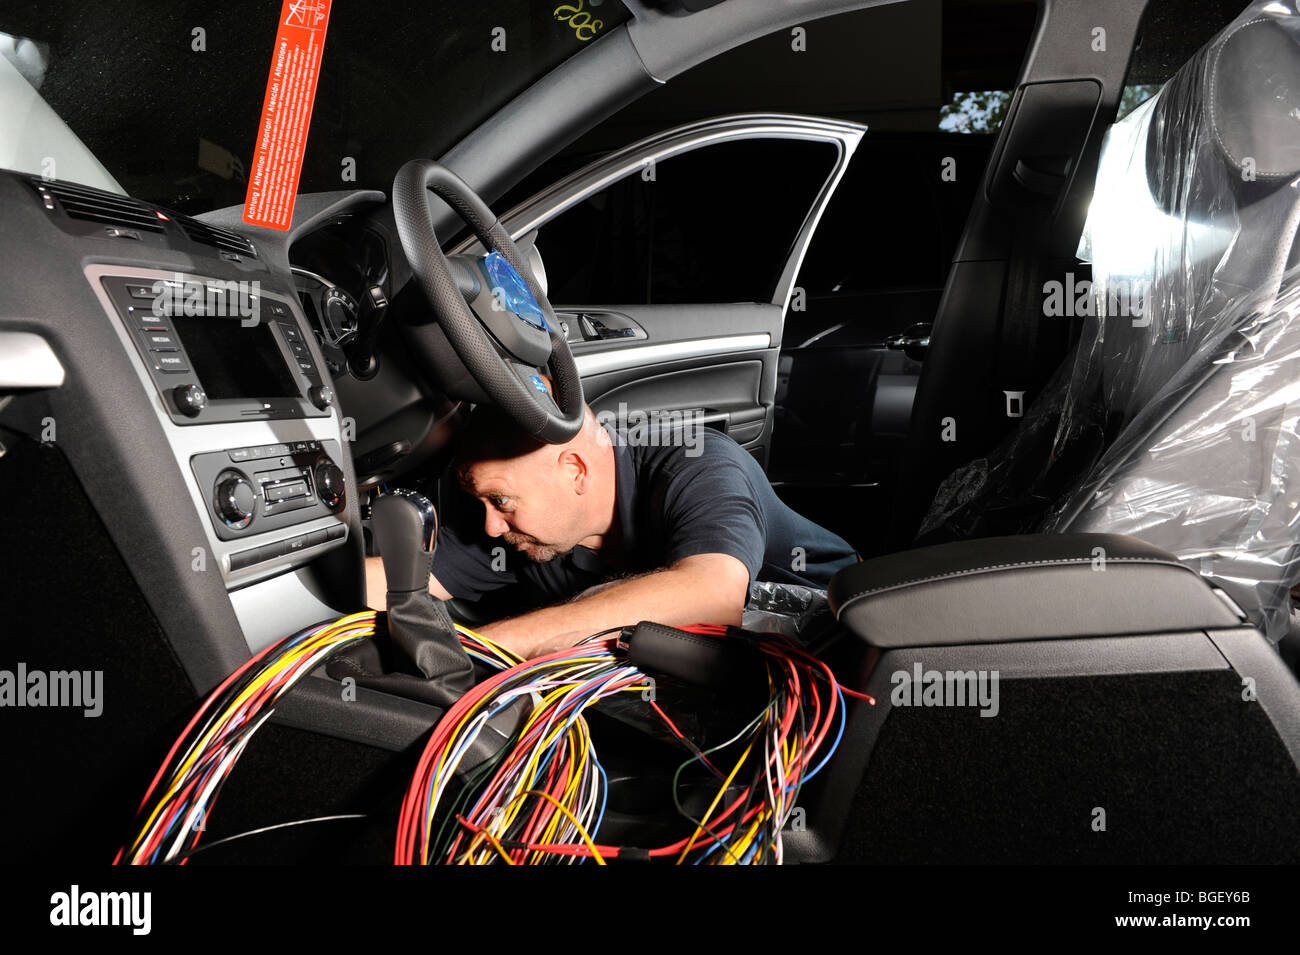 a fitter putting a wiring loom harness in a 2009 skoda octavia Alpine Stereo Harness a fitter putting a wiring loom harness in a 2009 skoda octavia police car